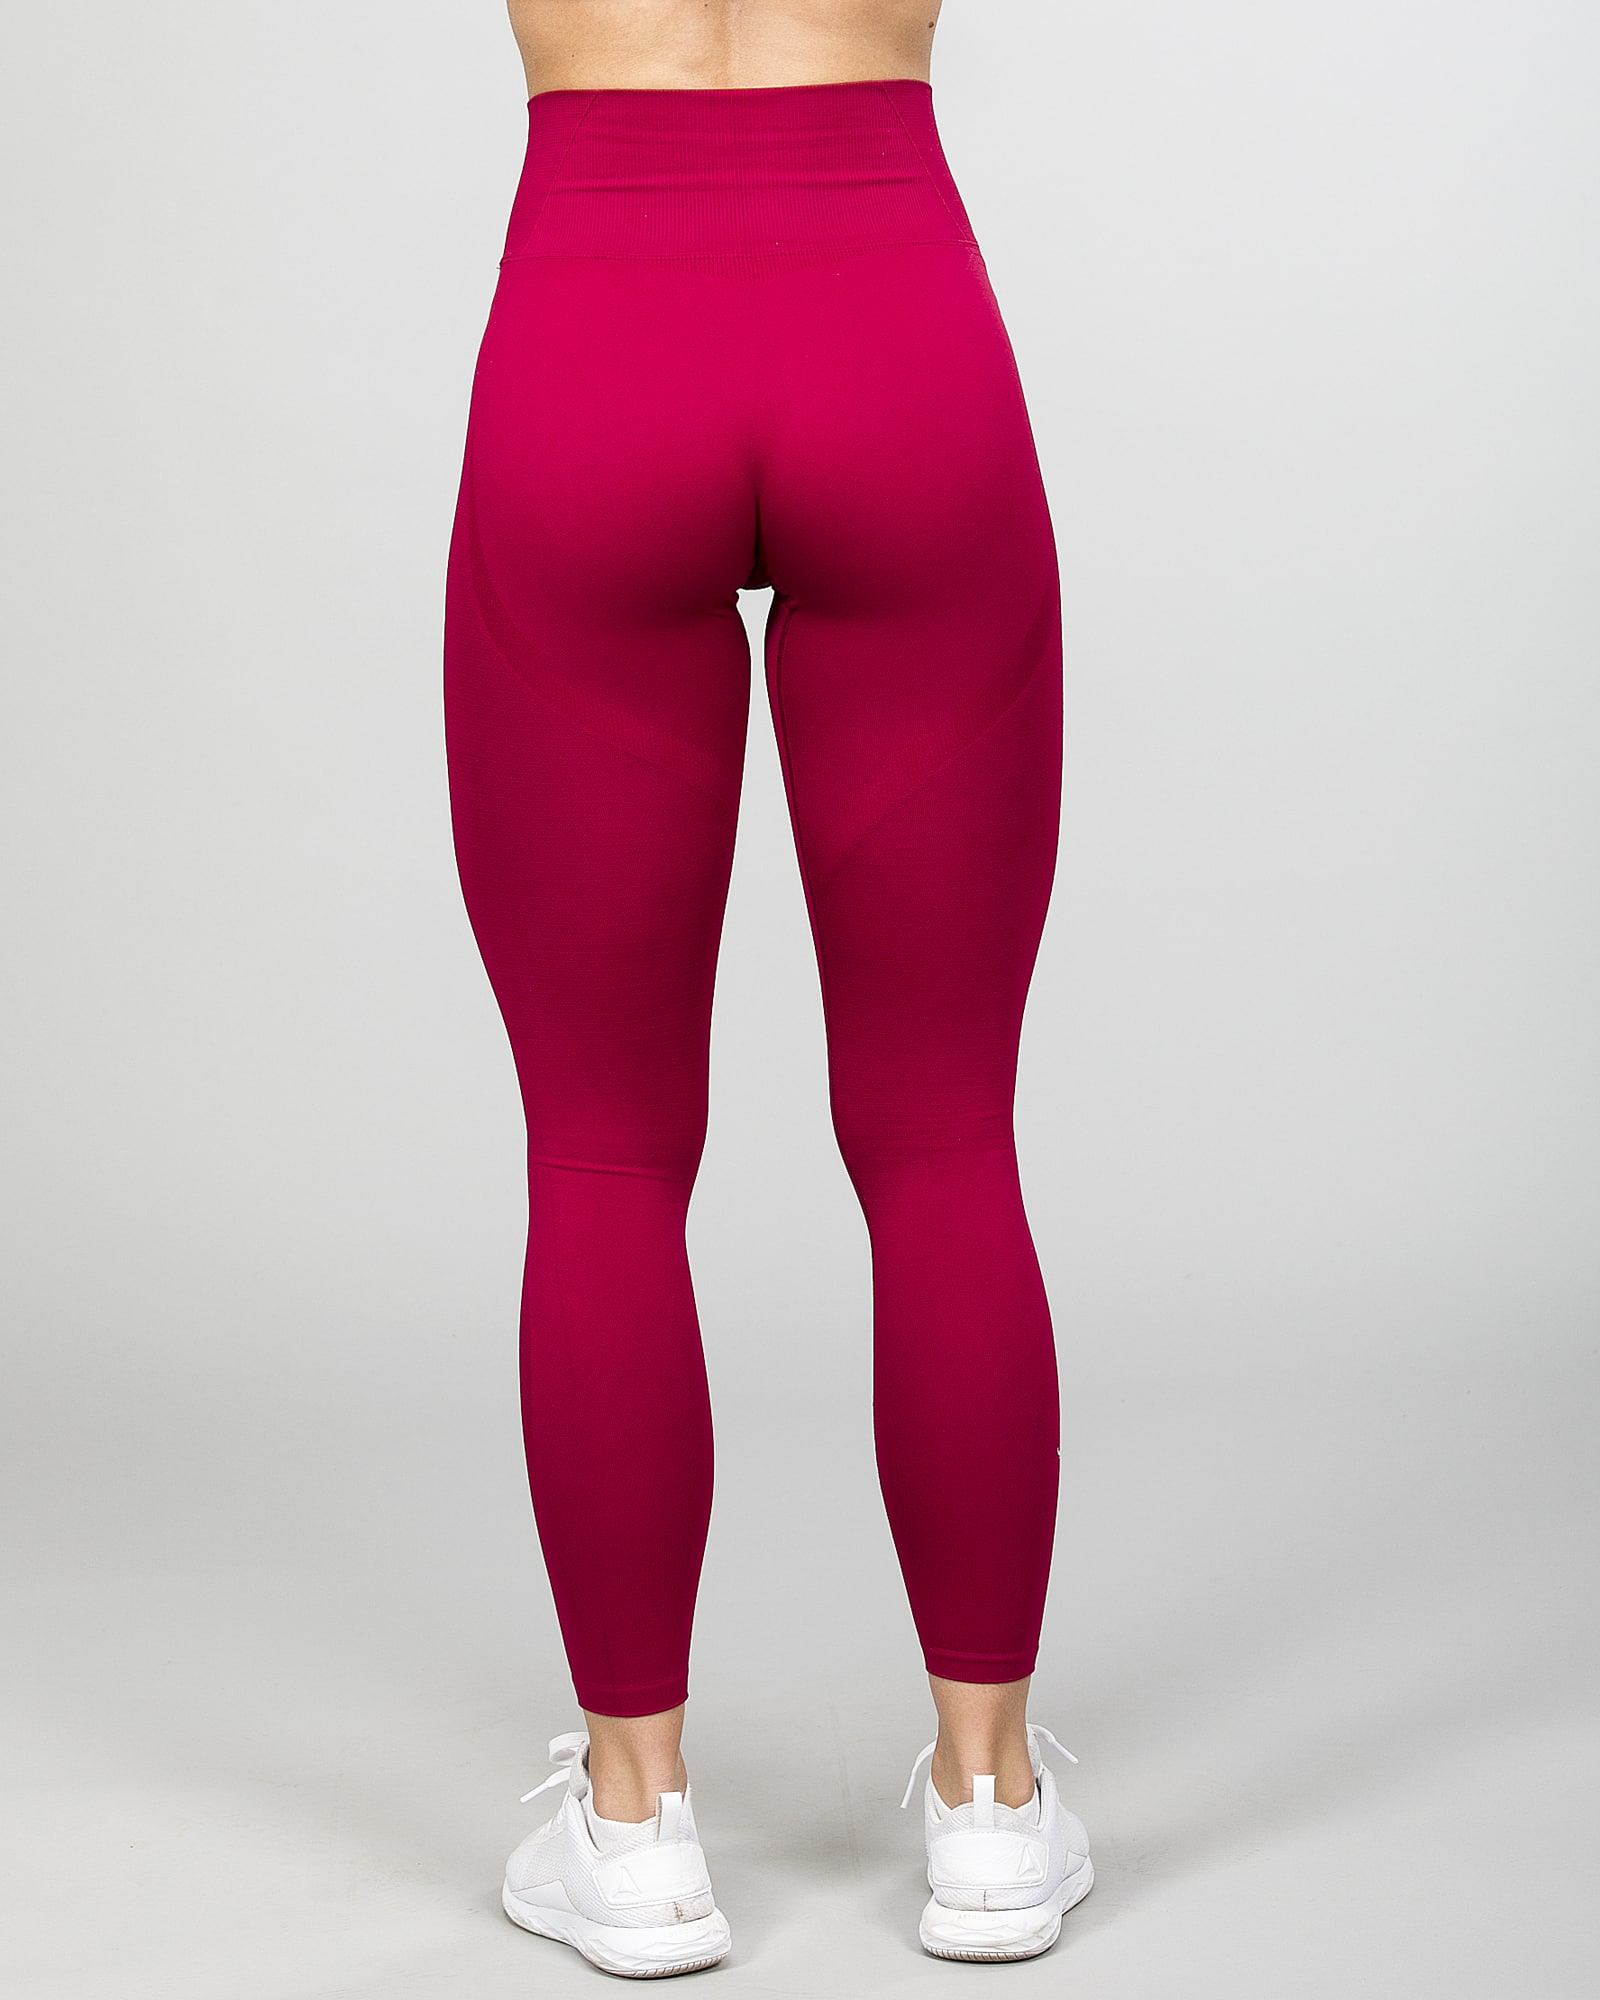 Famme Vortex Legging - Dark Red vhwl-bx c